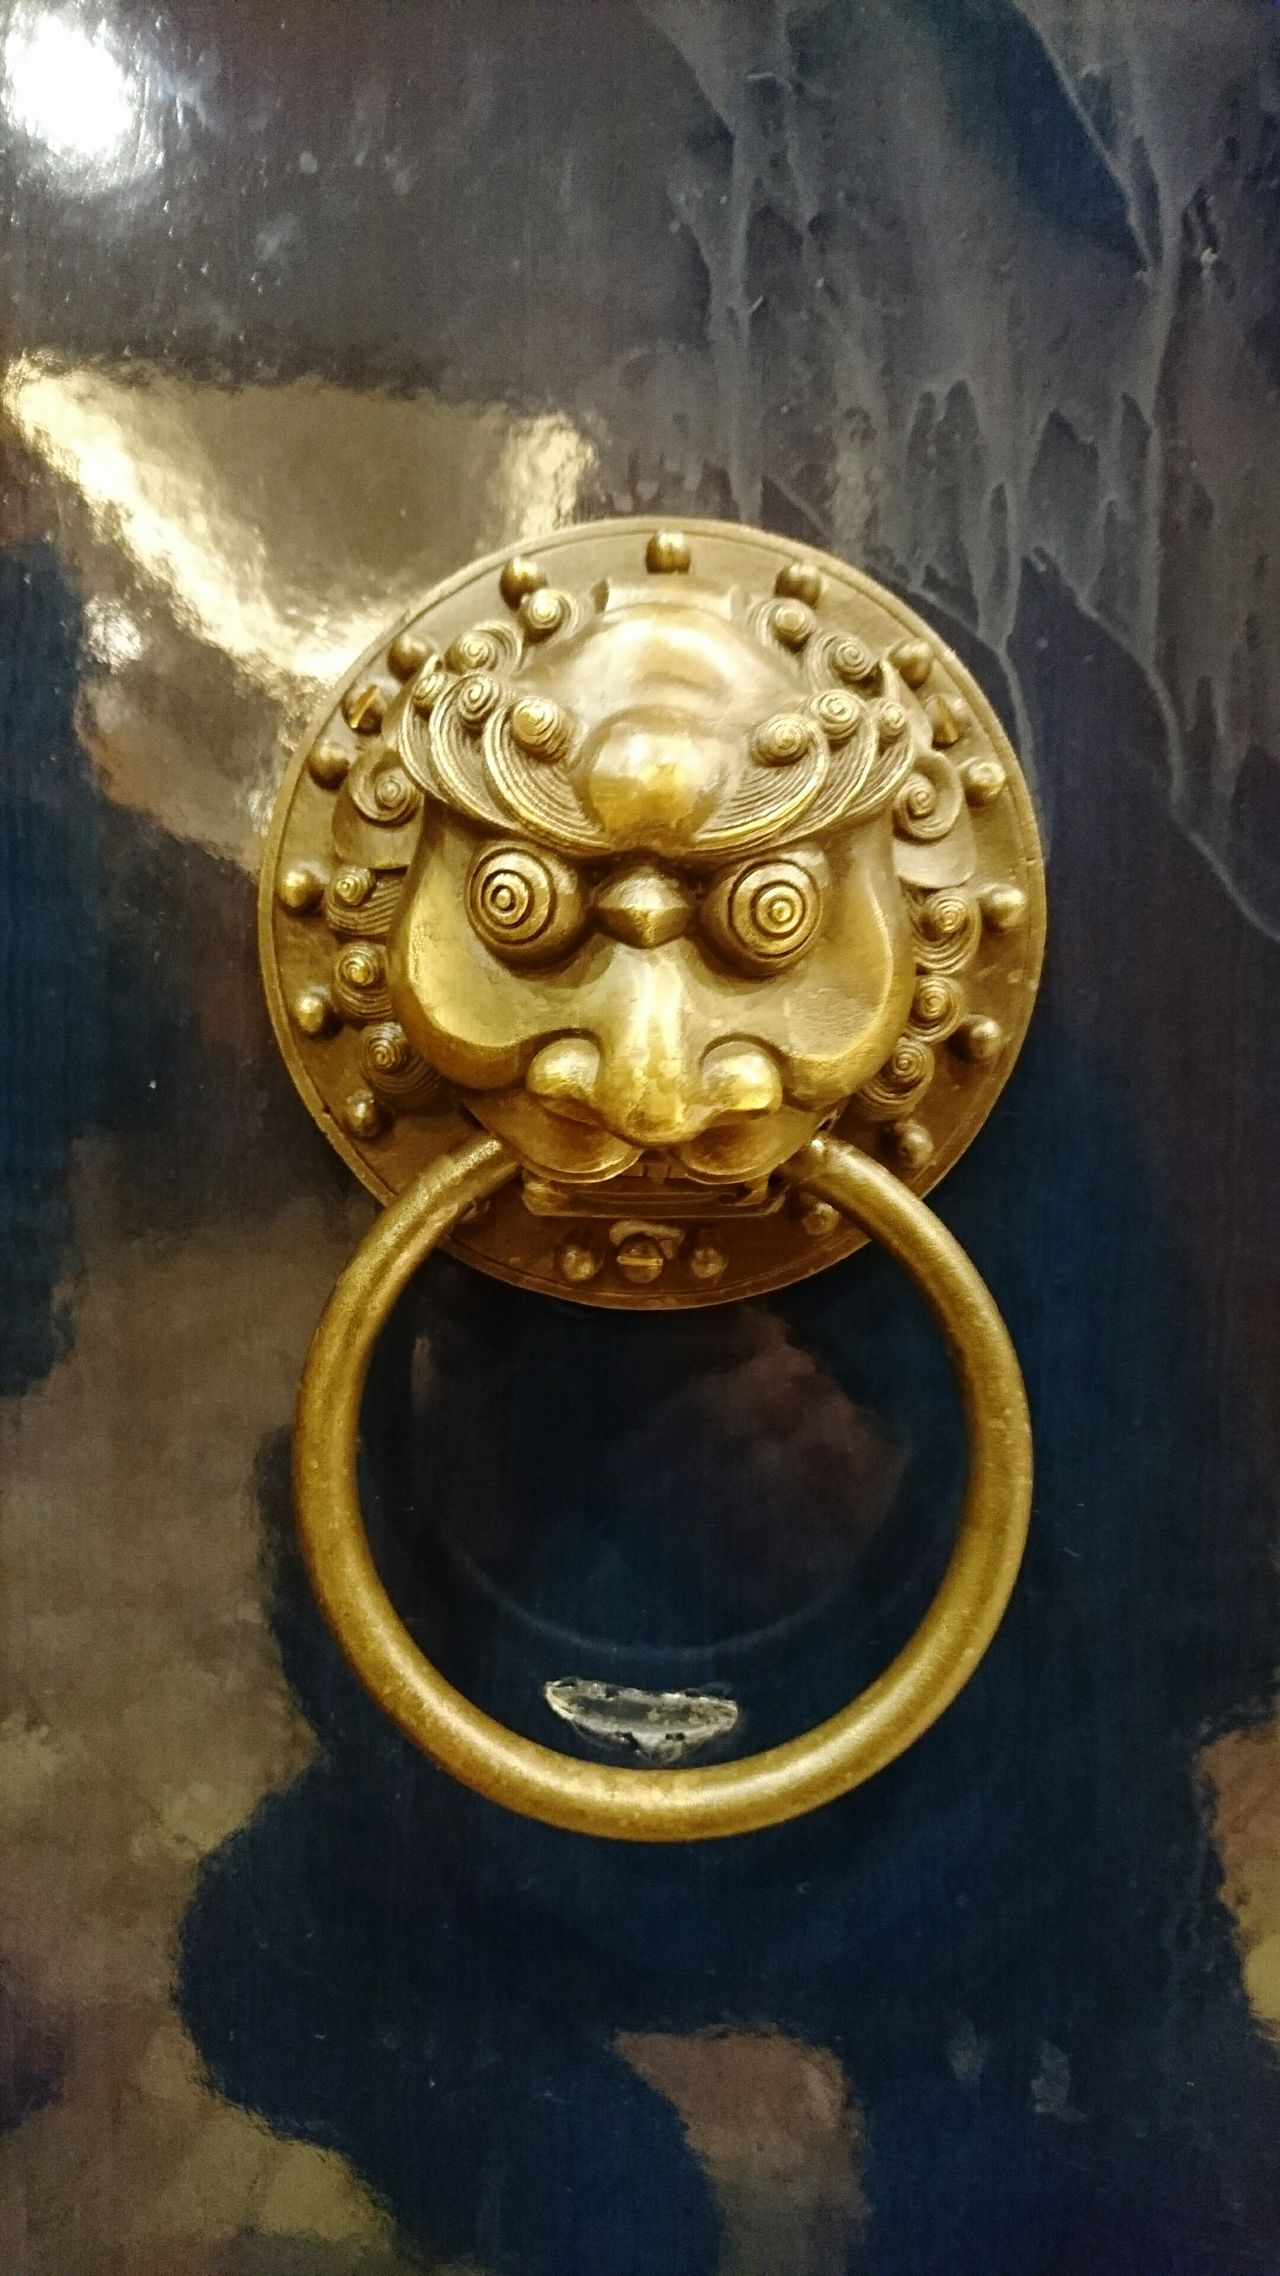 Door knocker. Metal No People Antique Close-up Knocker Knocker Metalwork Knockers Black Black Color Metal Art Gold Color Lion Head Lion Art EyeEm Best Shots Eyeemphotography Sony Xperia Sony Photographer Photograph Malephotographerofthemonth EyeEm EyeEm Gallery EyeEmBestPics Photo Photos